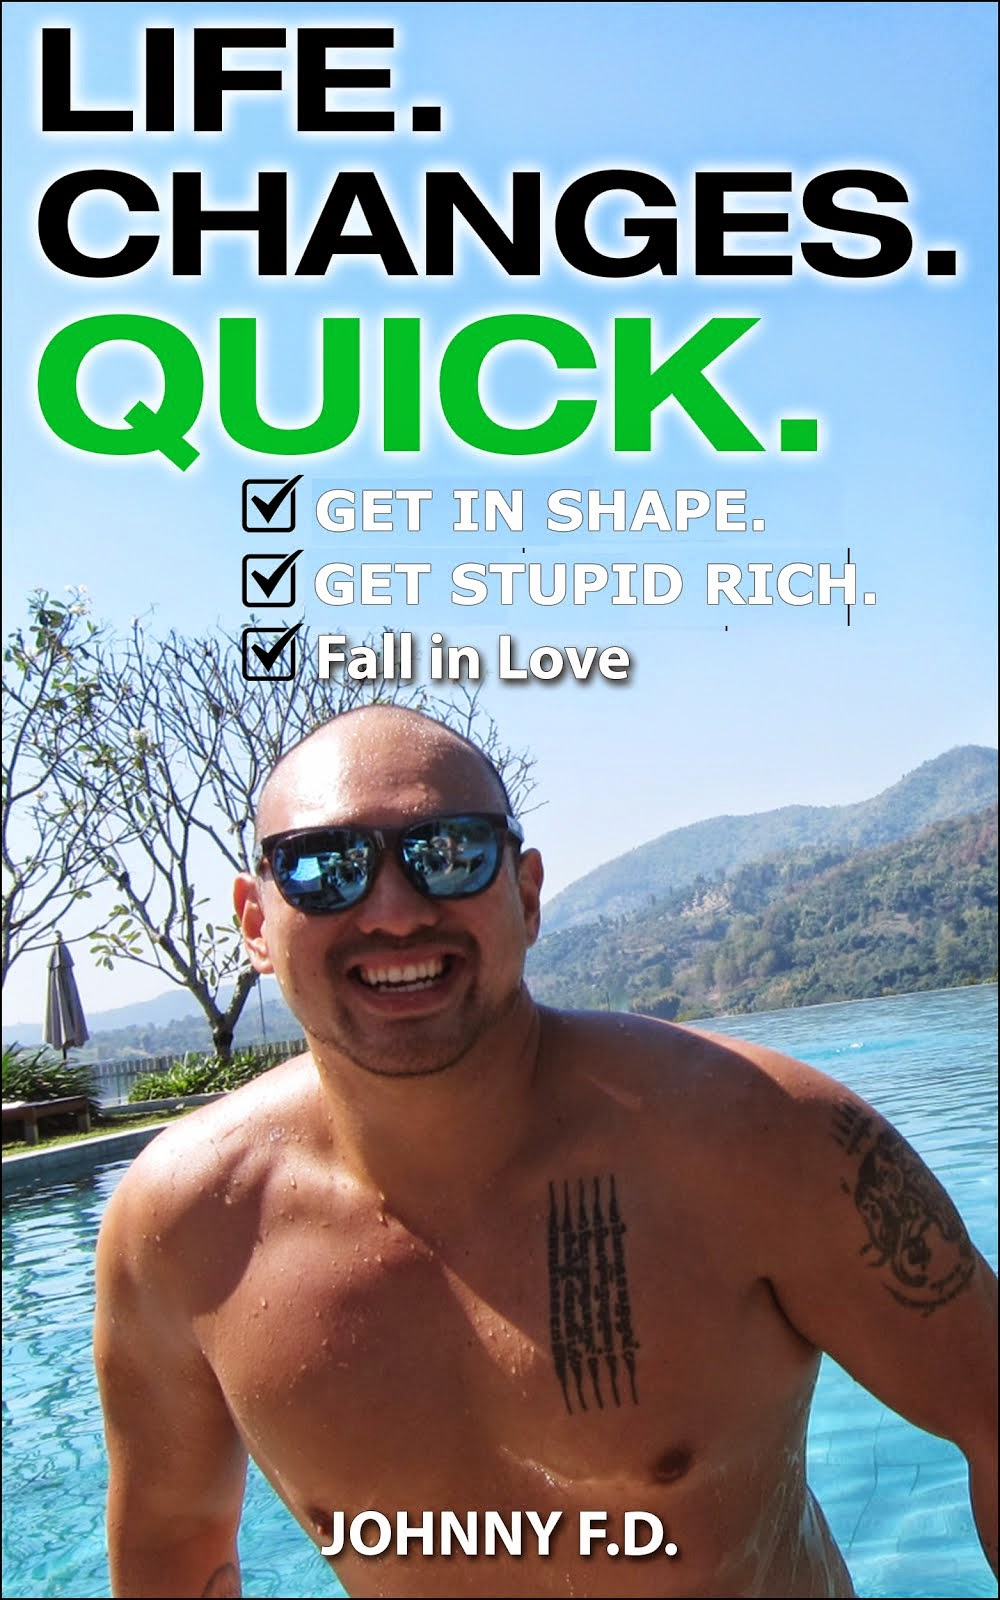 NEW BOOK: Life Changes Quick